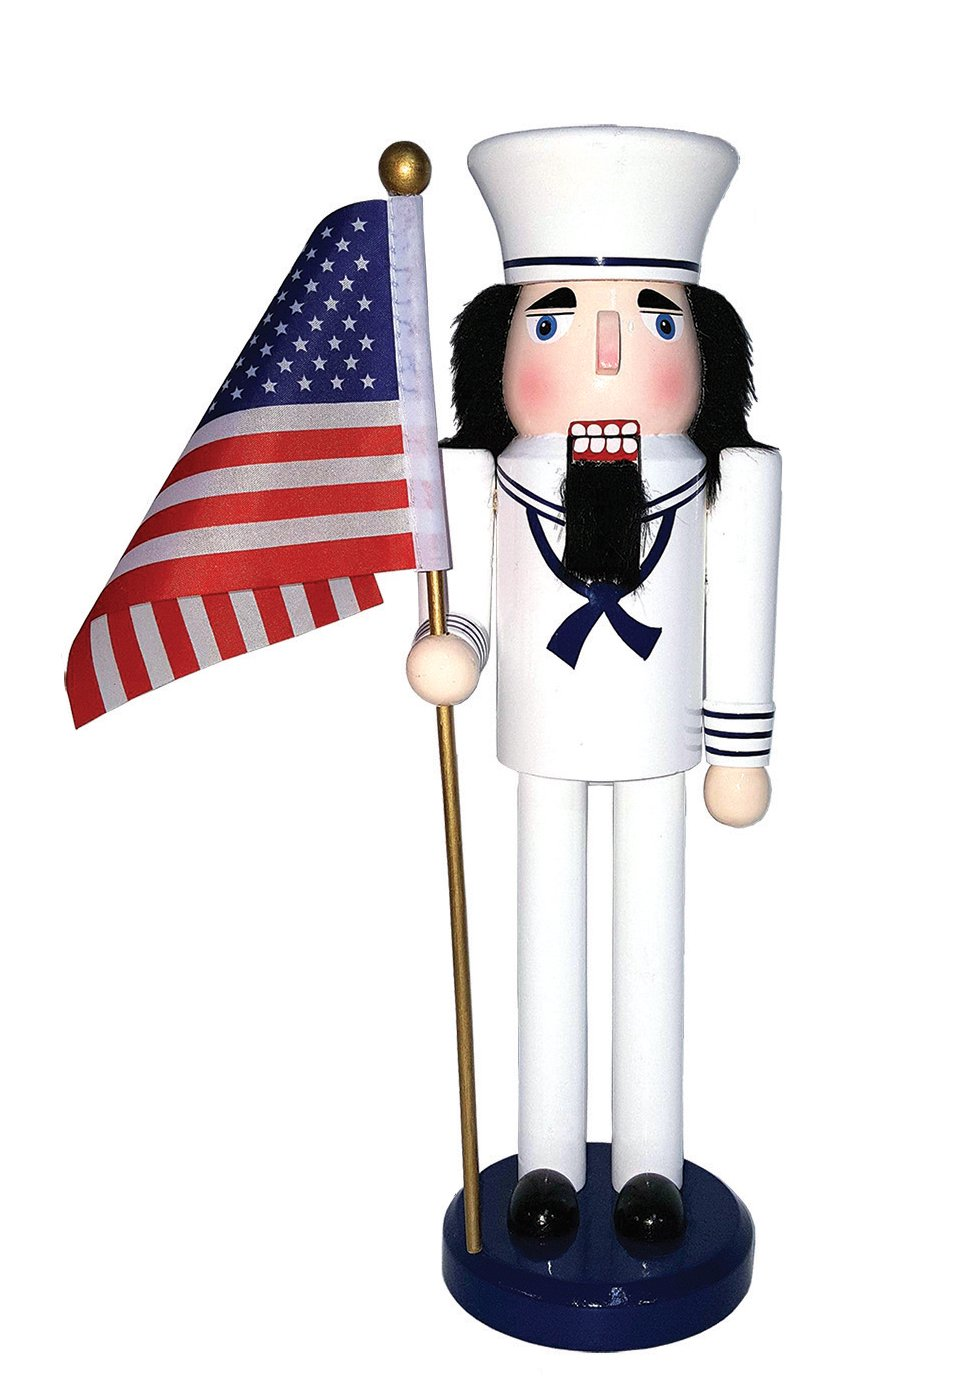 Santa's Workshop 70557 Navy Nutcracker with Flag, 14'', Multi